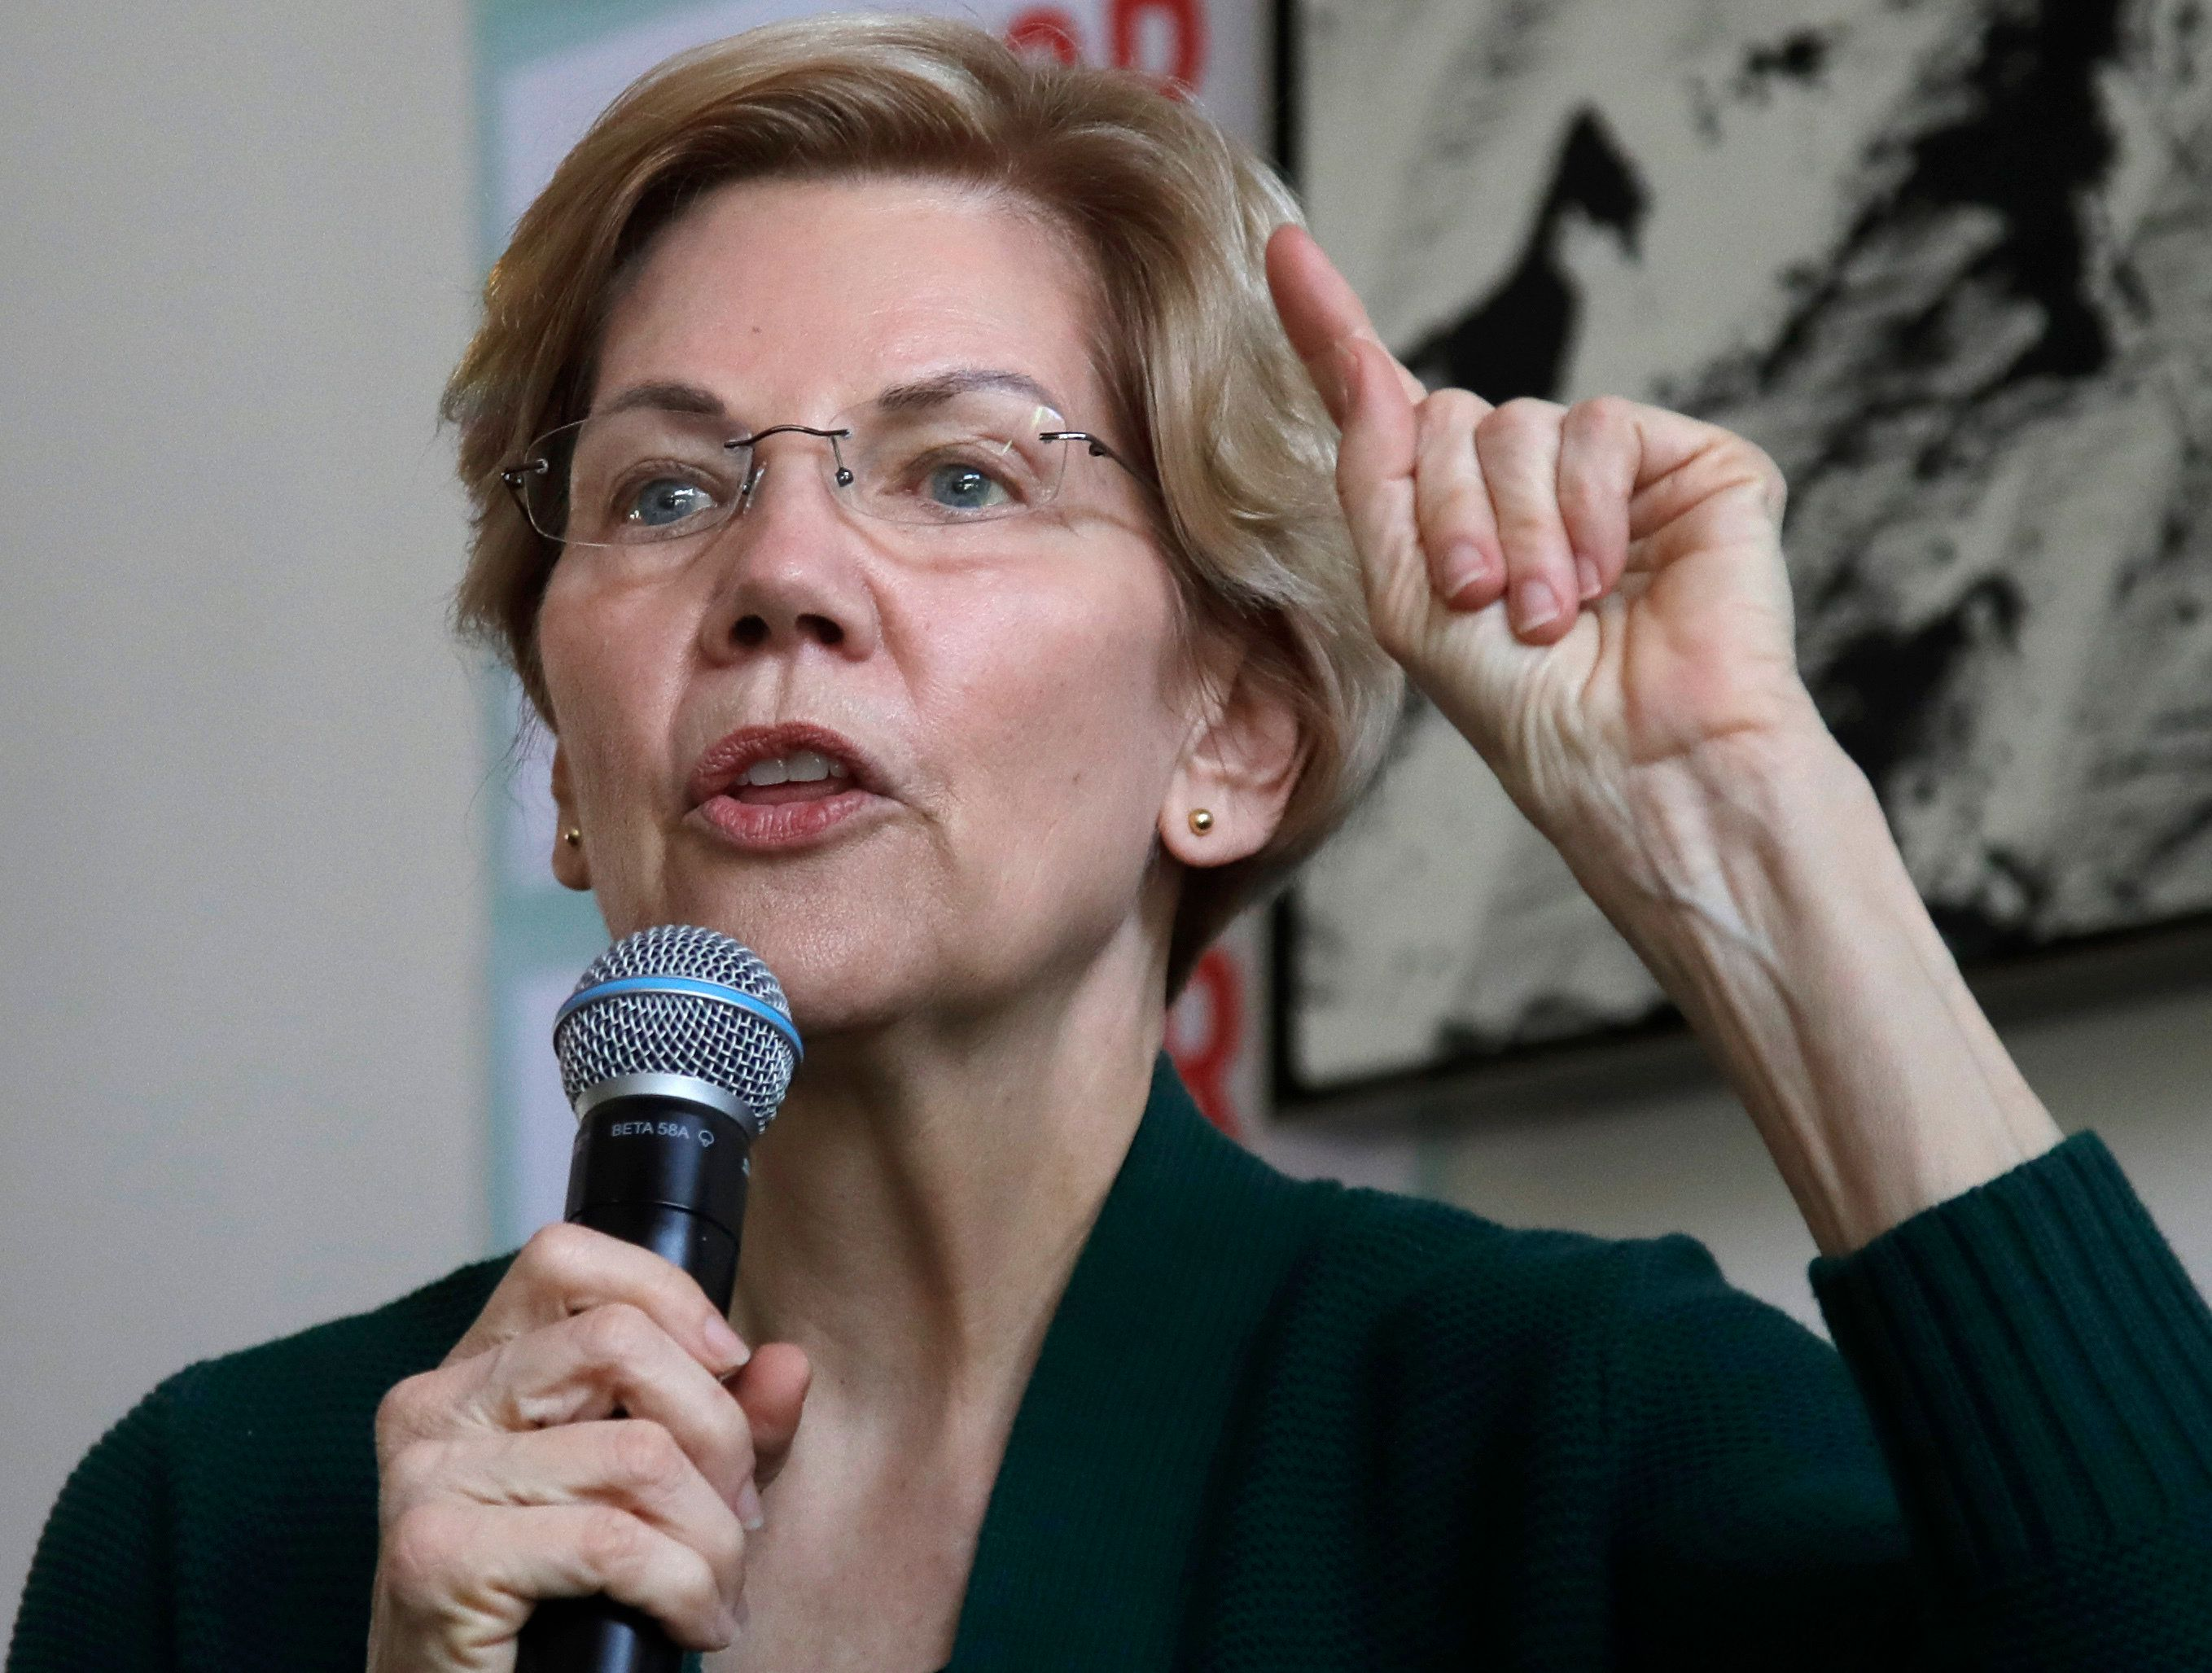 Democratic presidential candidate Sen. Elizabeth Warren, D-Mass., speaks at a campaign house party, Friday, March 15, 2019, in Salem, N.H. (AP Photo/Elise Amendola)